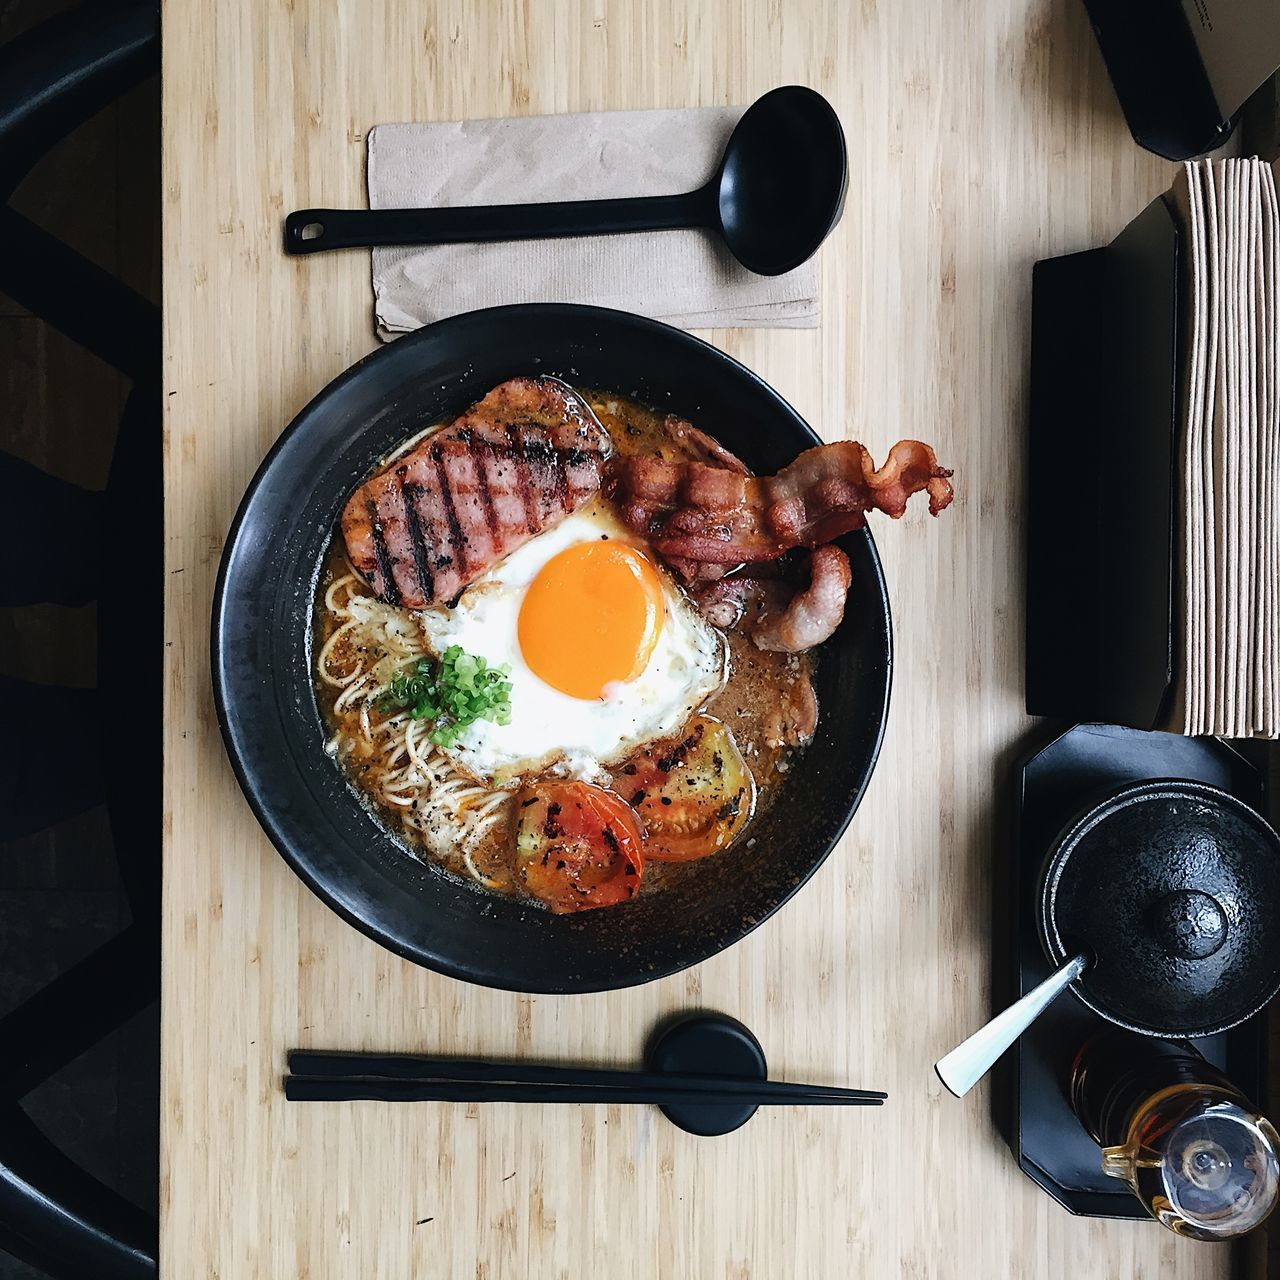 Breakfast Day Egg Egg Yolk English Breakfast Food Freshness Fried Fried Egg Frying Pan Indoors  Meat No People Ready-to-eat Sausage Sunny Side Up Table Wood - Material